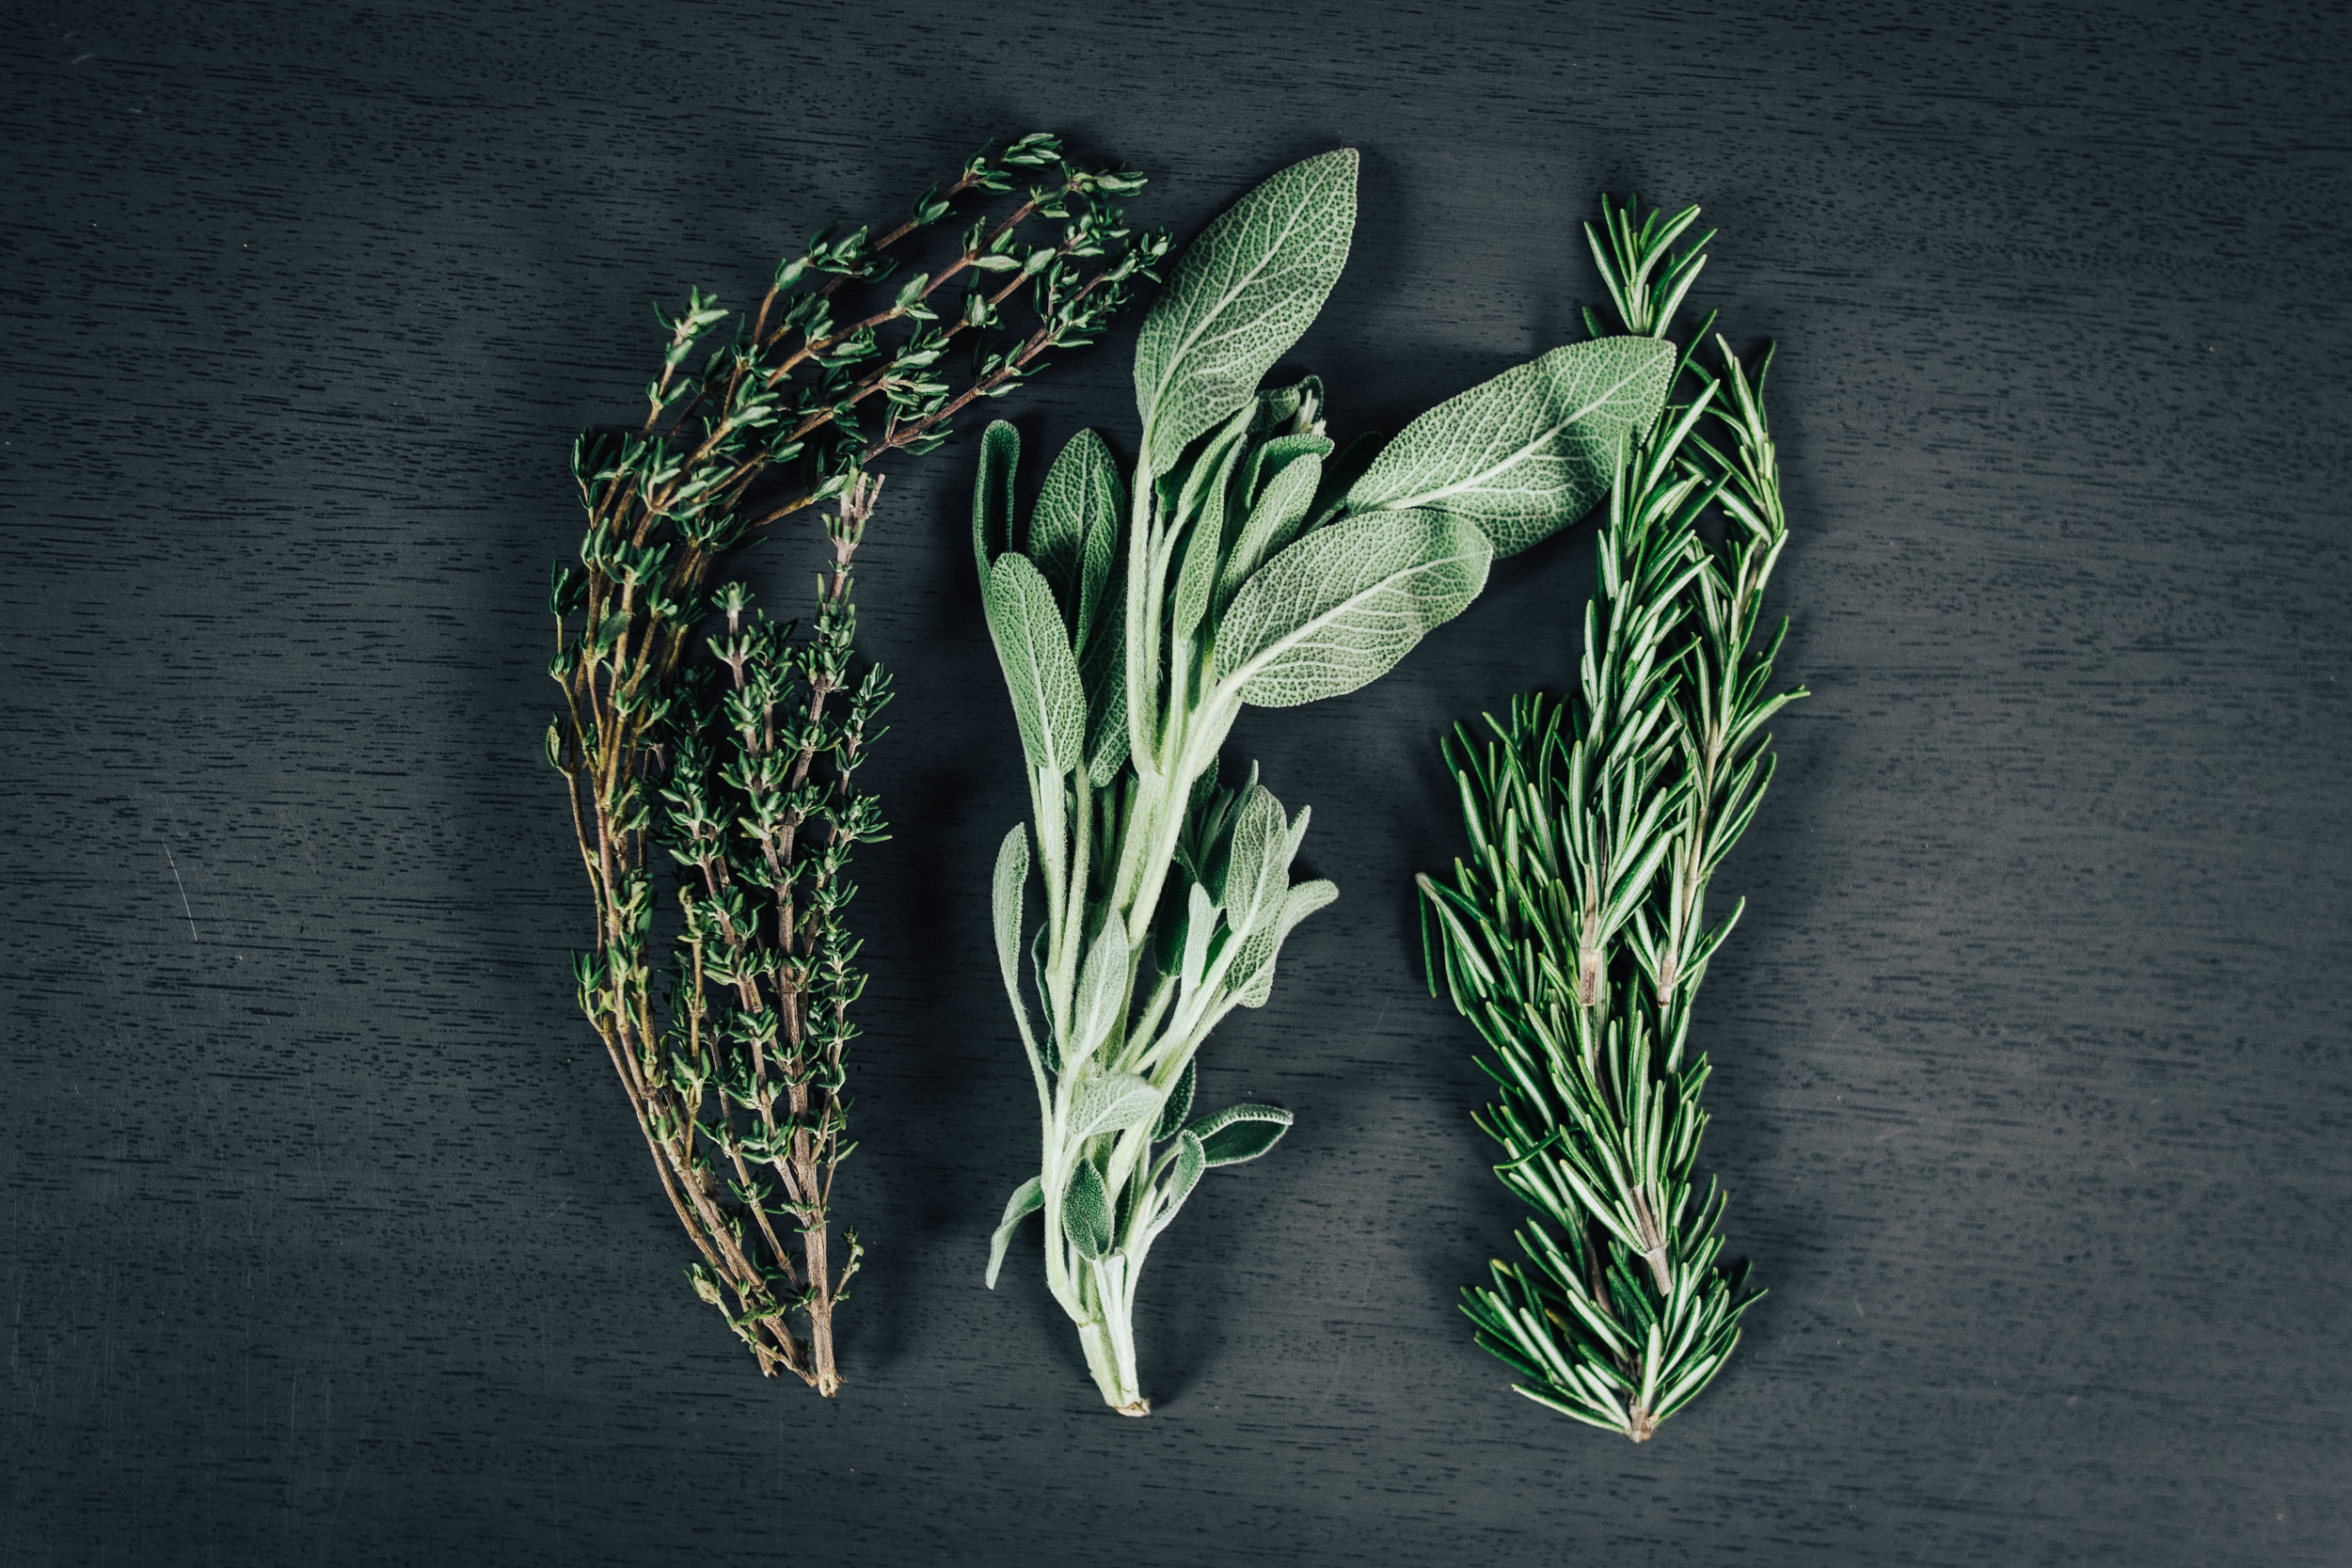 Rosemary Thyme and Sage Herbs